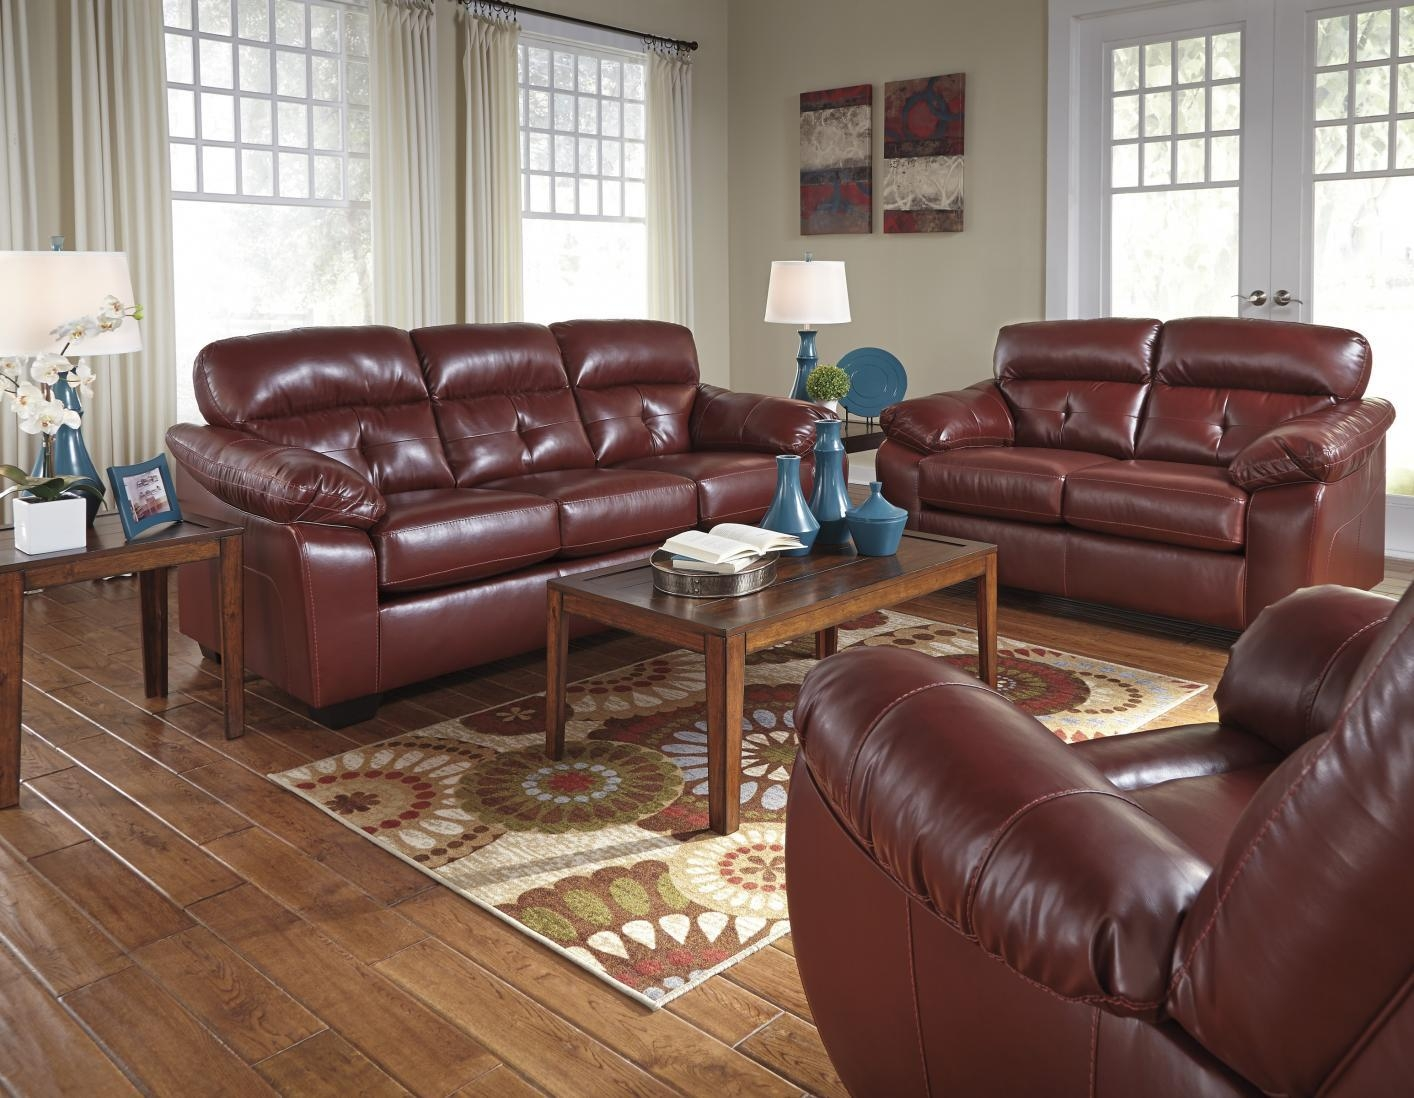 Benchcraft Leather Sofa With Ideas Photo 25331 | Kengire With Regard To Benchcraft Leather Sofas (Image 11 of 20)